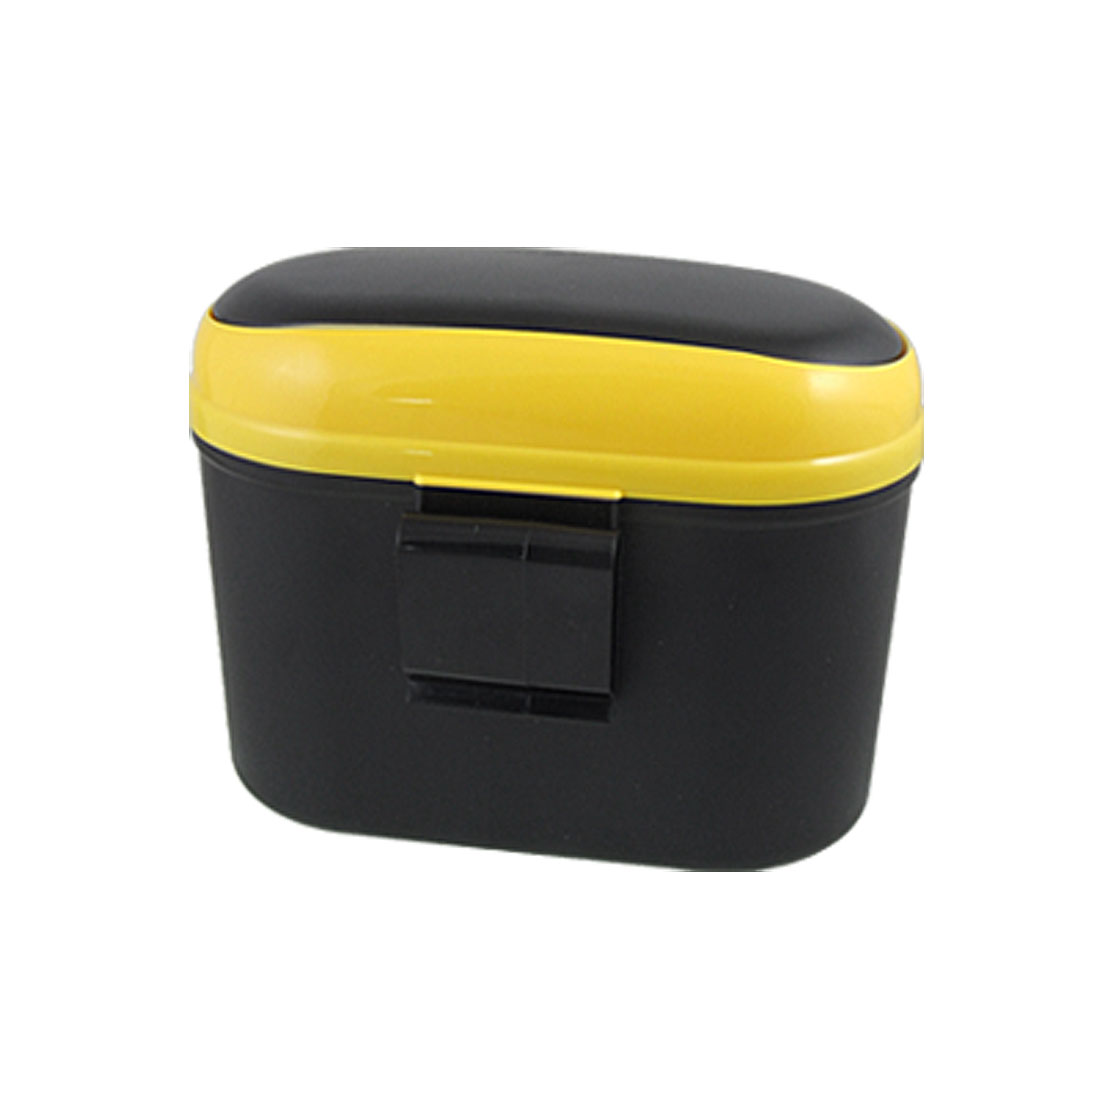 Car Auto Yellow Black 2-Way Open Trash Can Garbage Bin